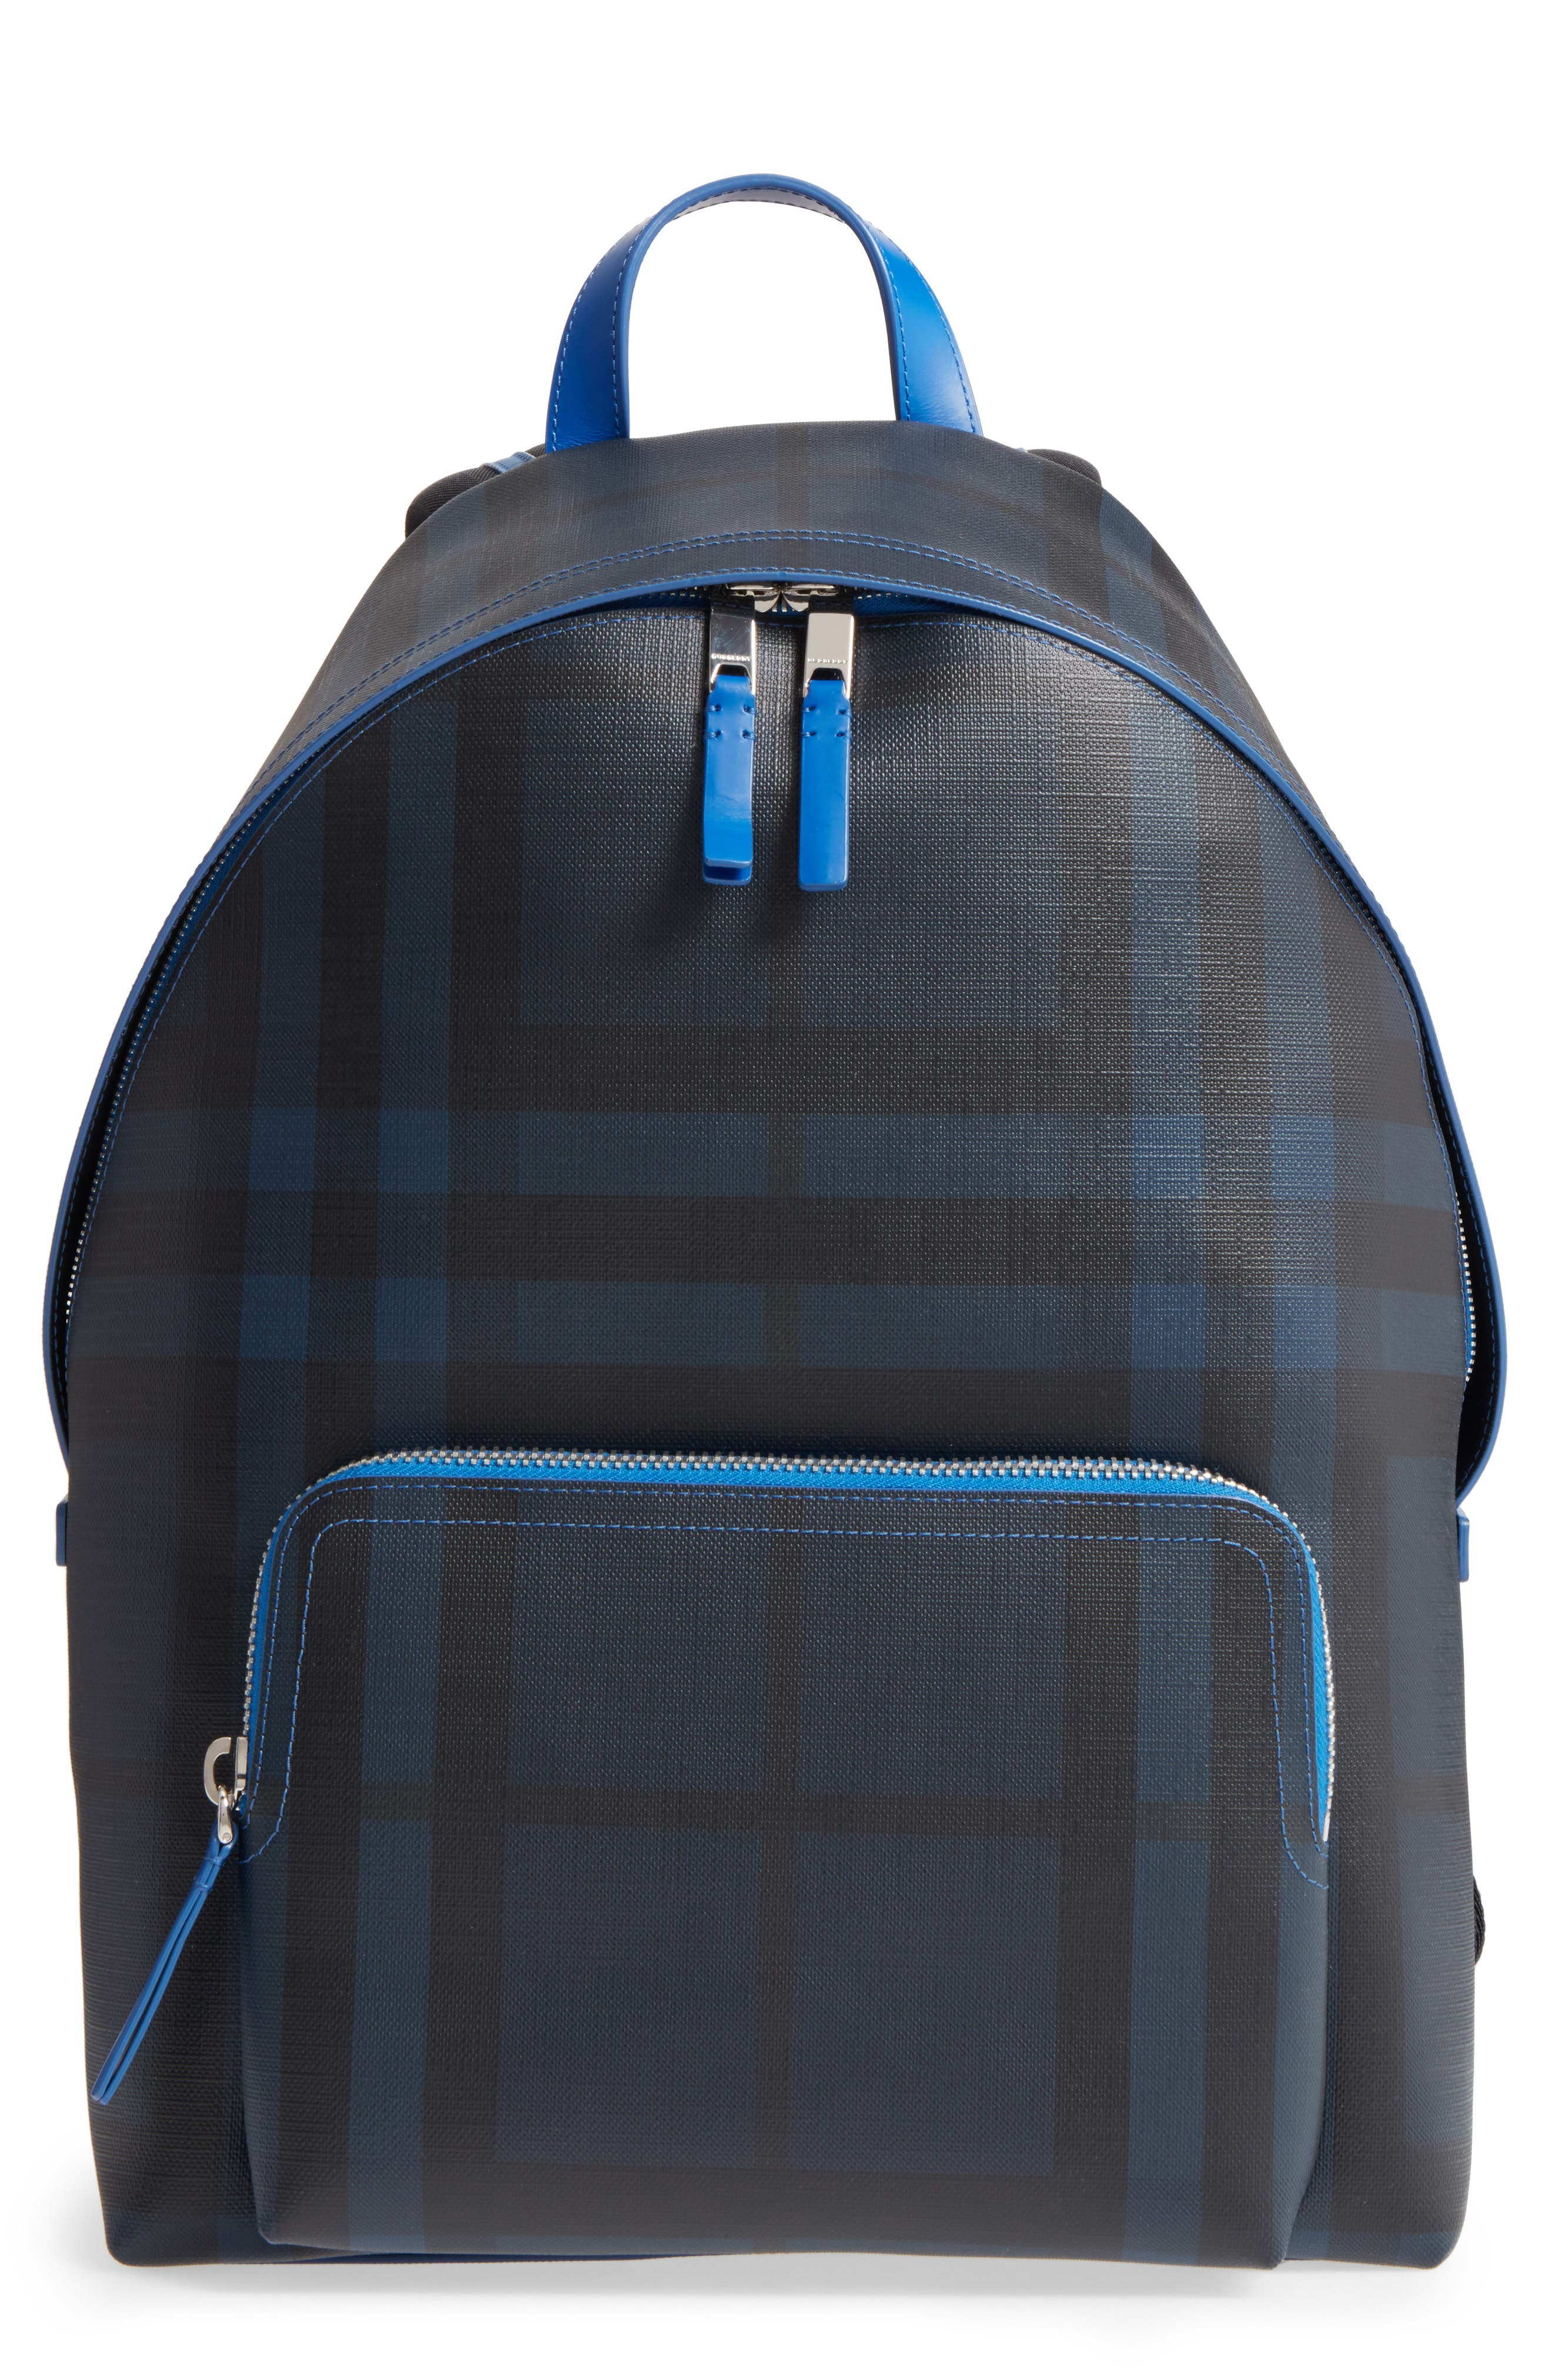 Check Faux Leather Backpack,                         Main,                         color, Navy/ Blue